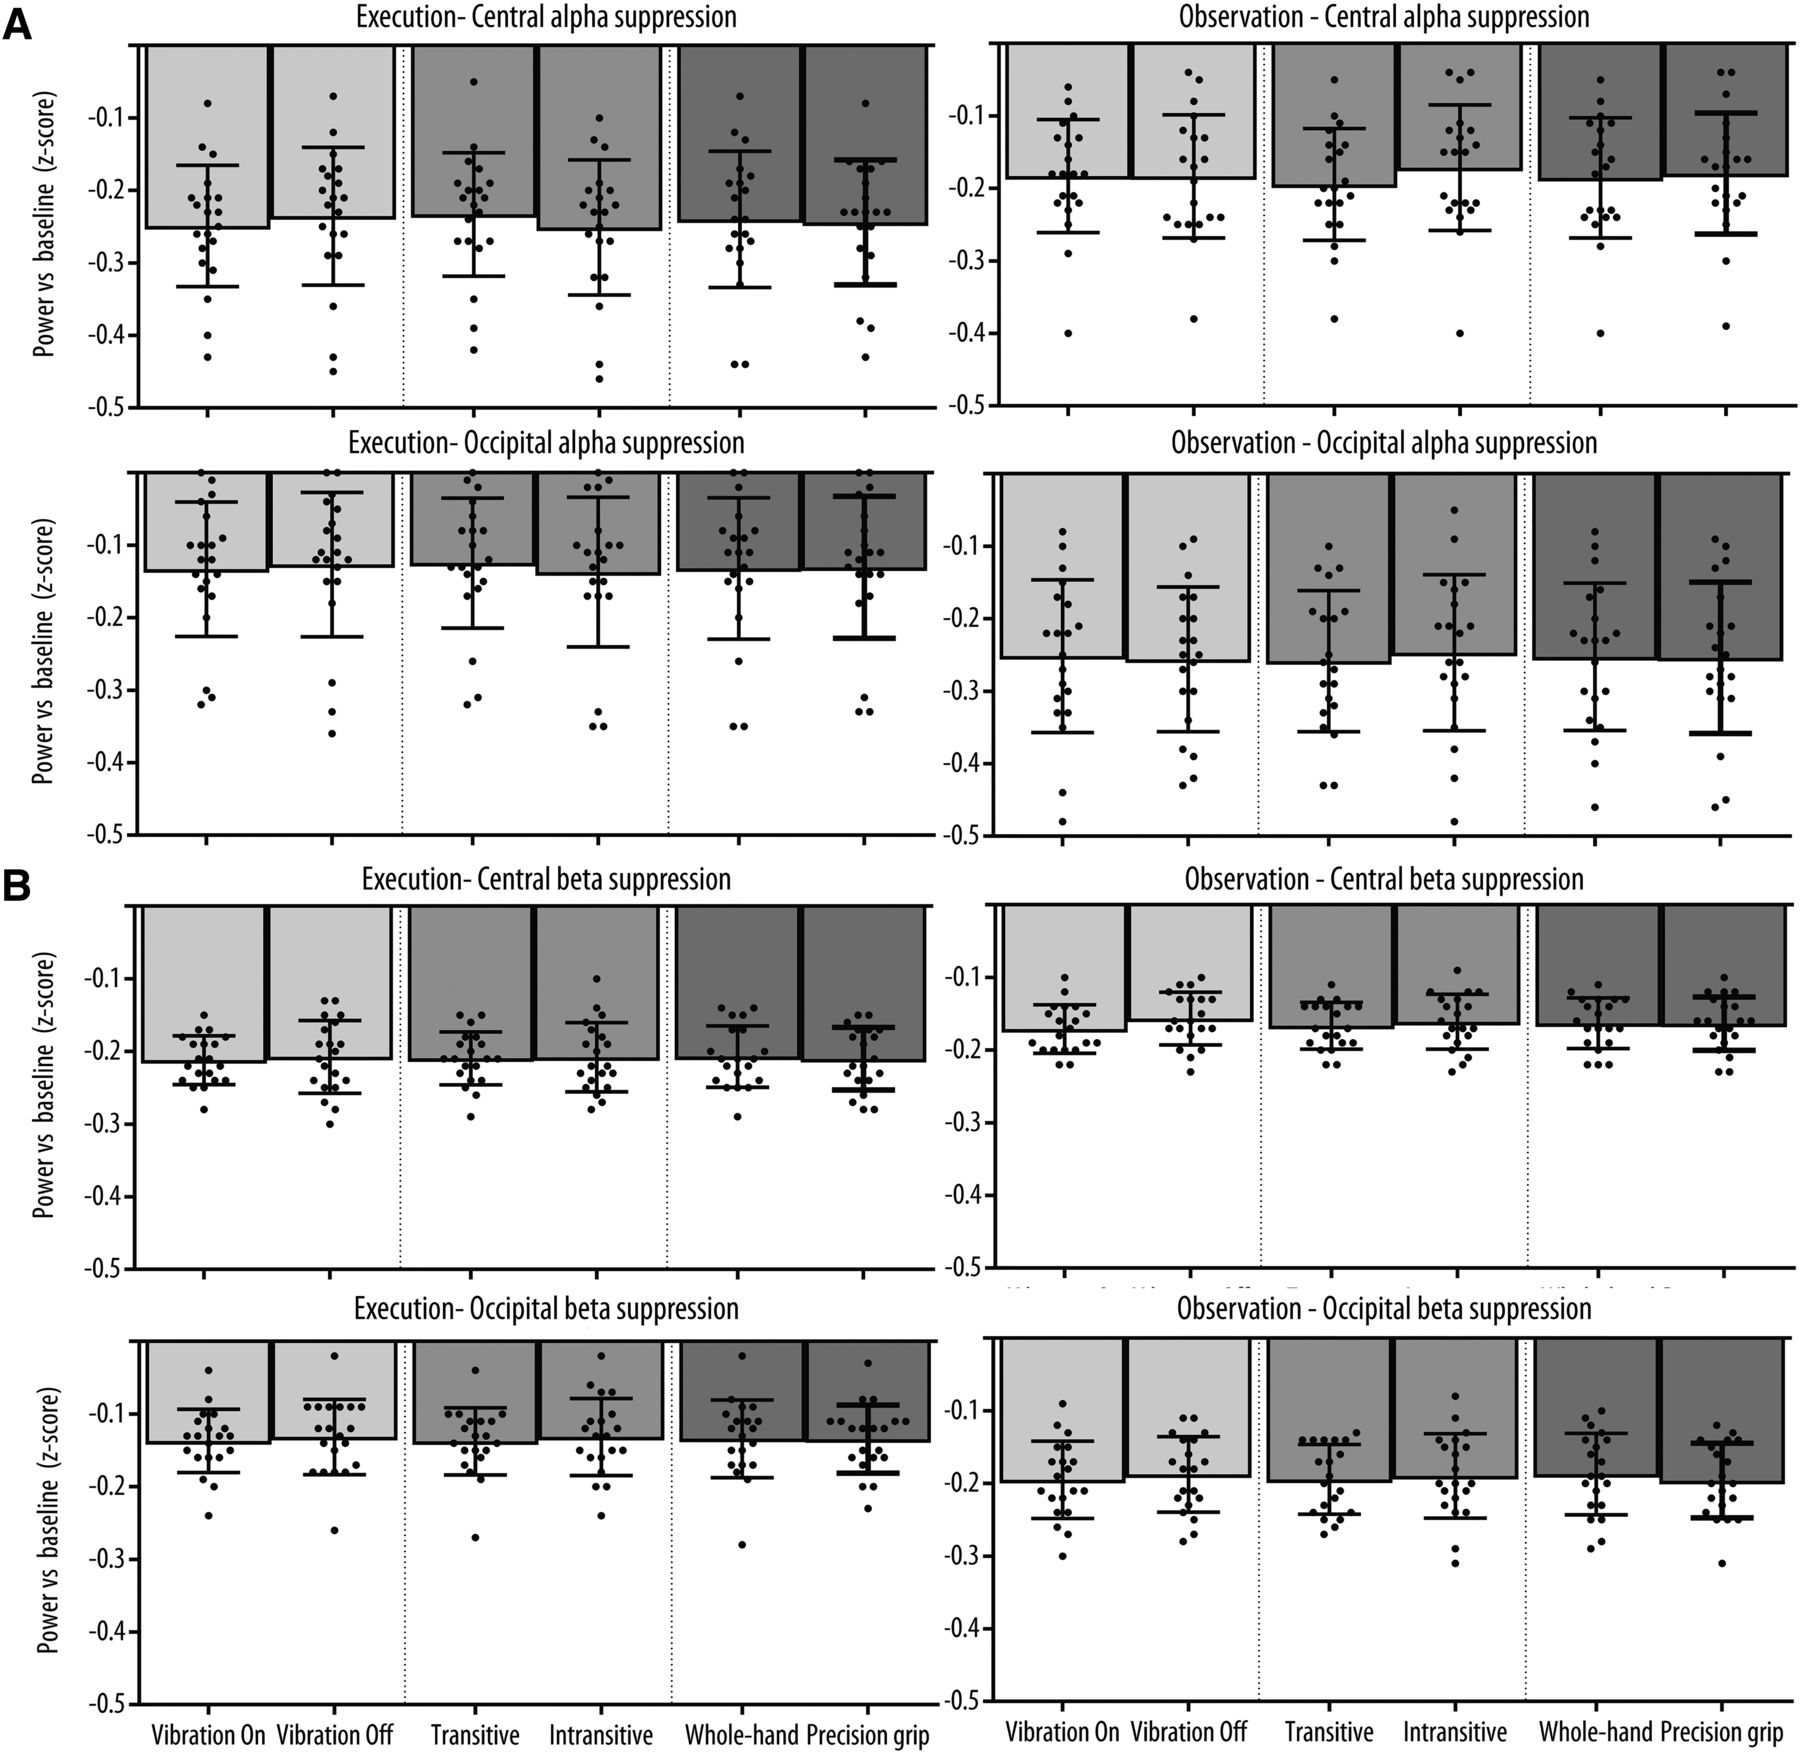 Crossmodal Classification Of Mu Rhythm Activity During Action Observation And Execution Suggests